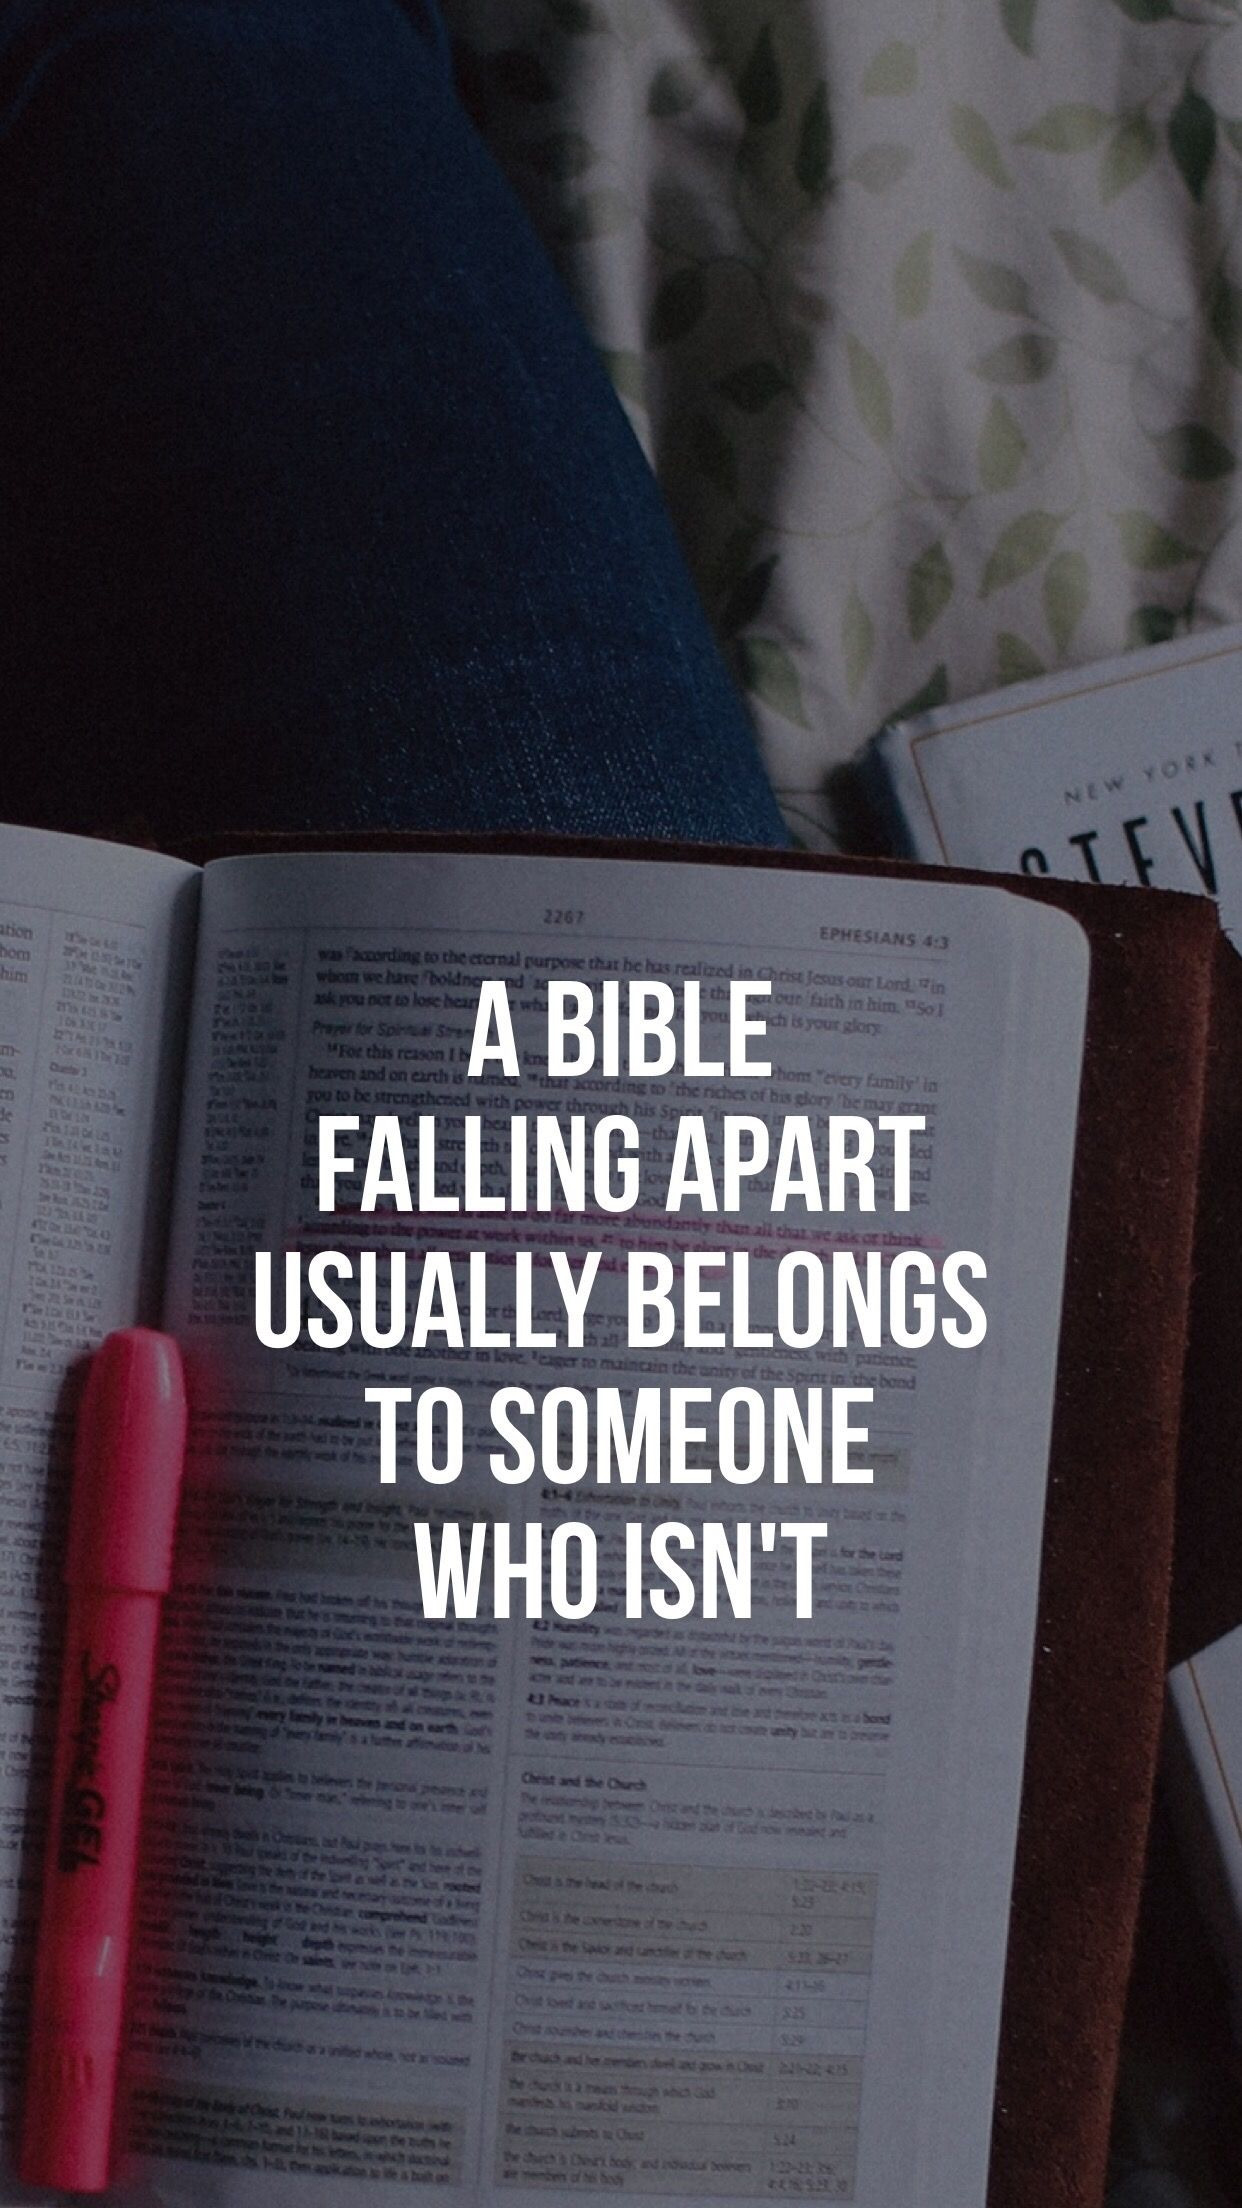 Pin by ᏦUℛℐᎽᎯℳᎯЅᎯℕ † on Jesus Loves You Pinterest